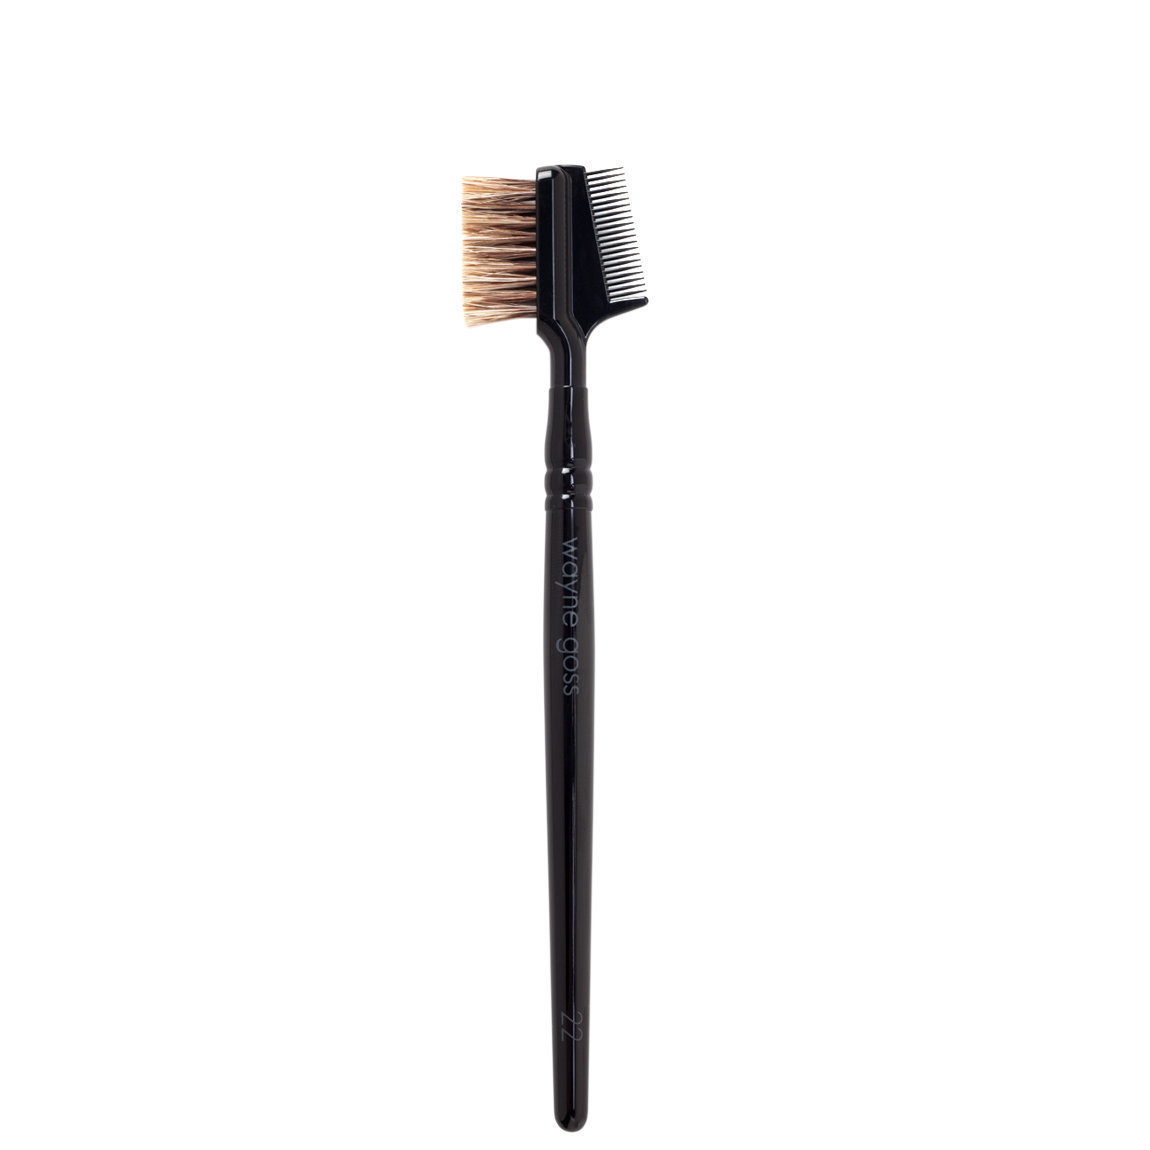 Wayne Goss Brush 22 Dual Ended Brow Brush product swatch.